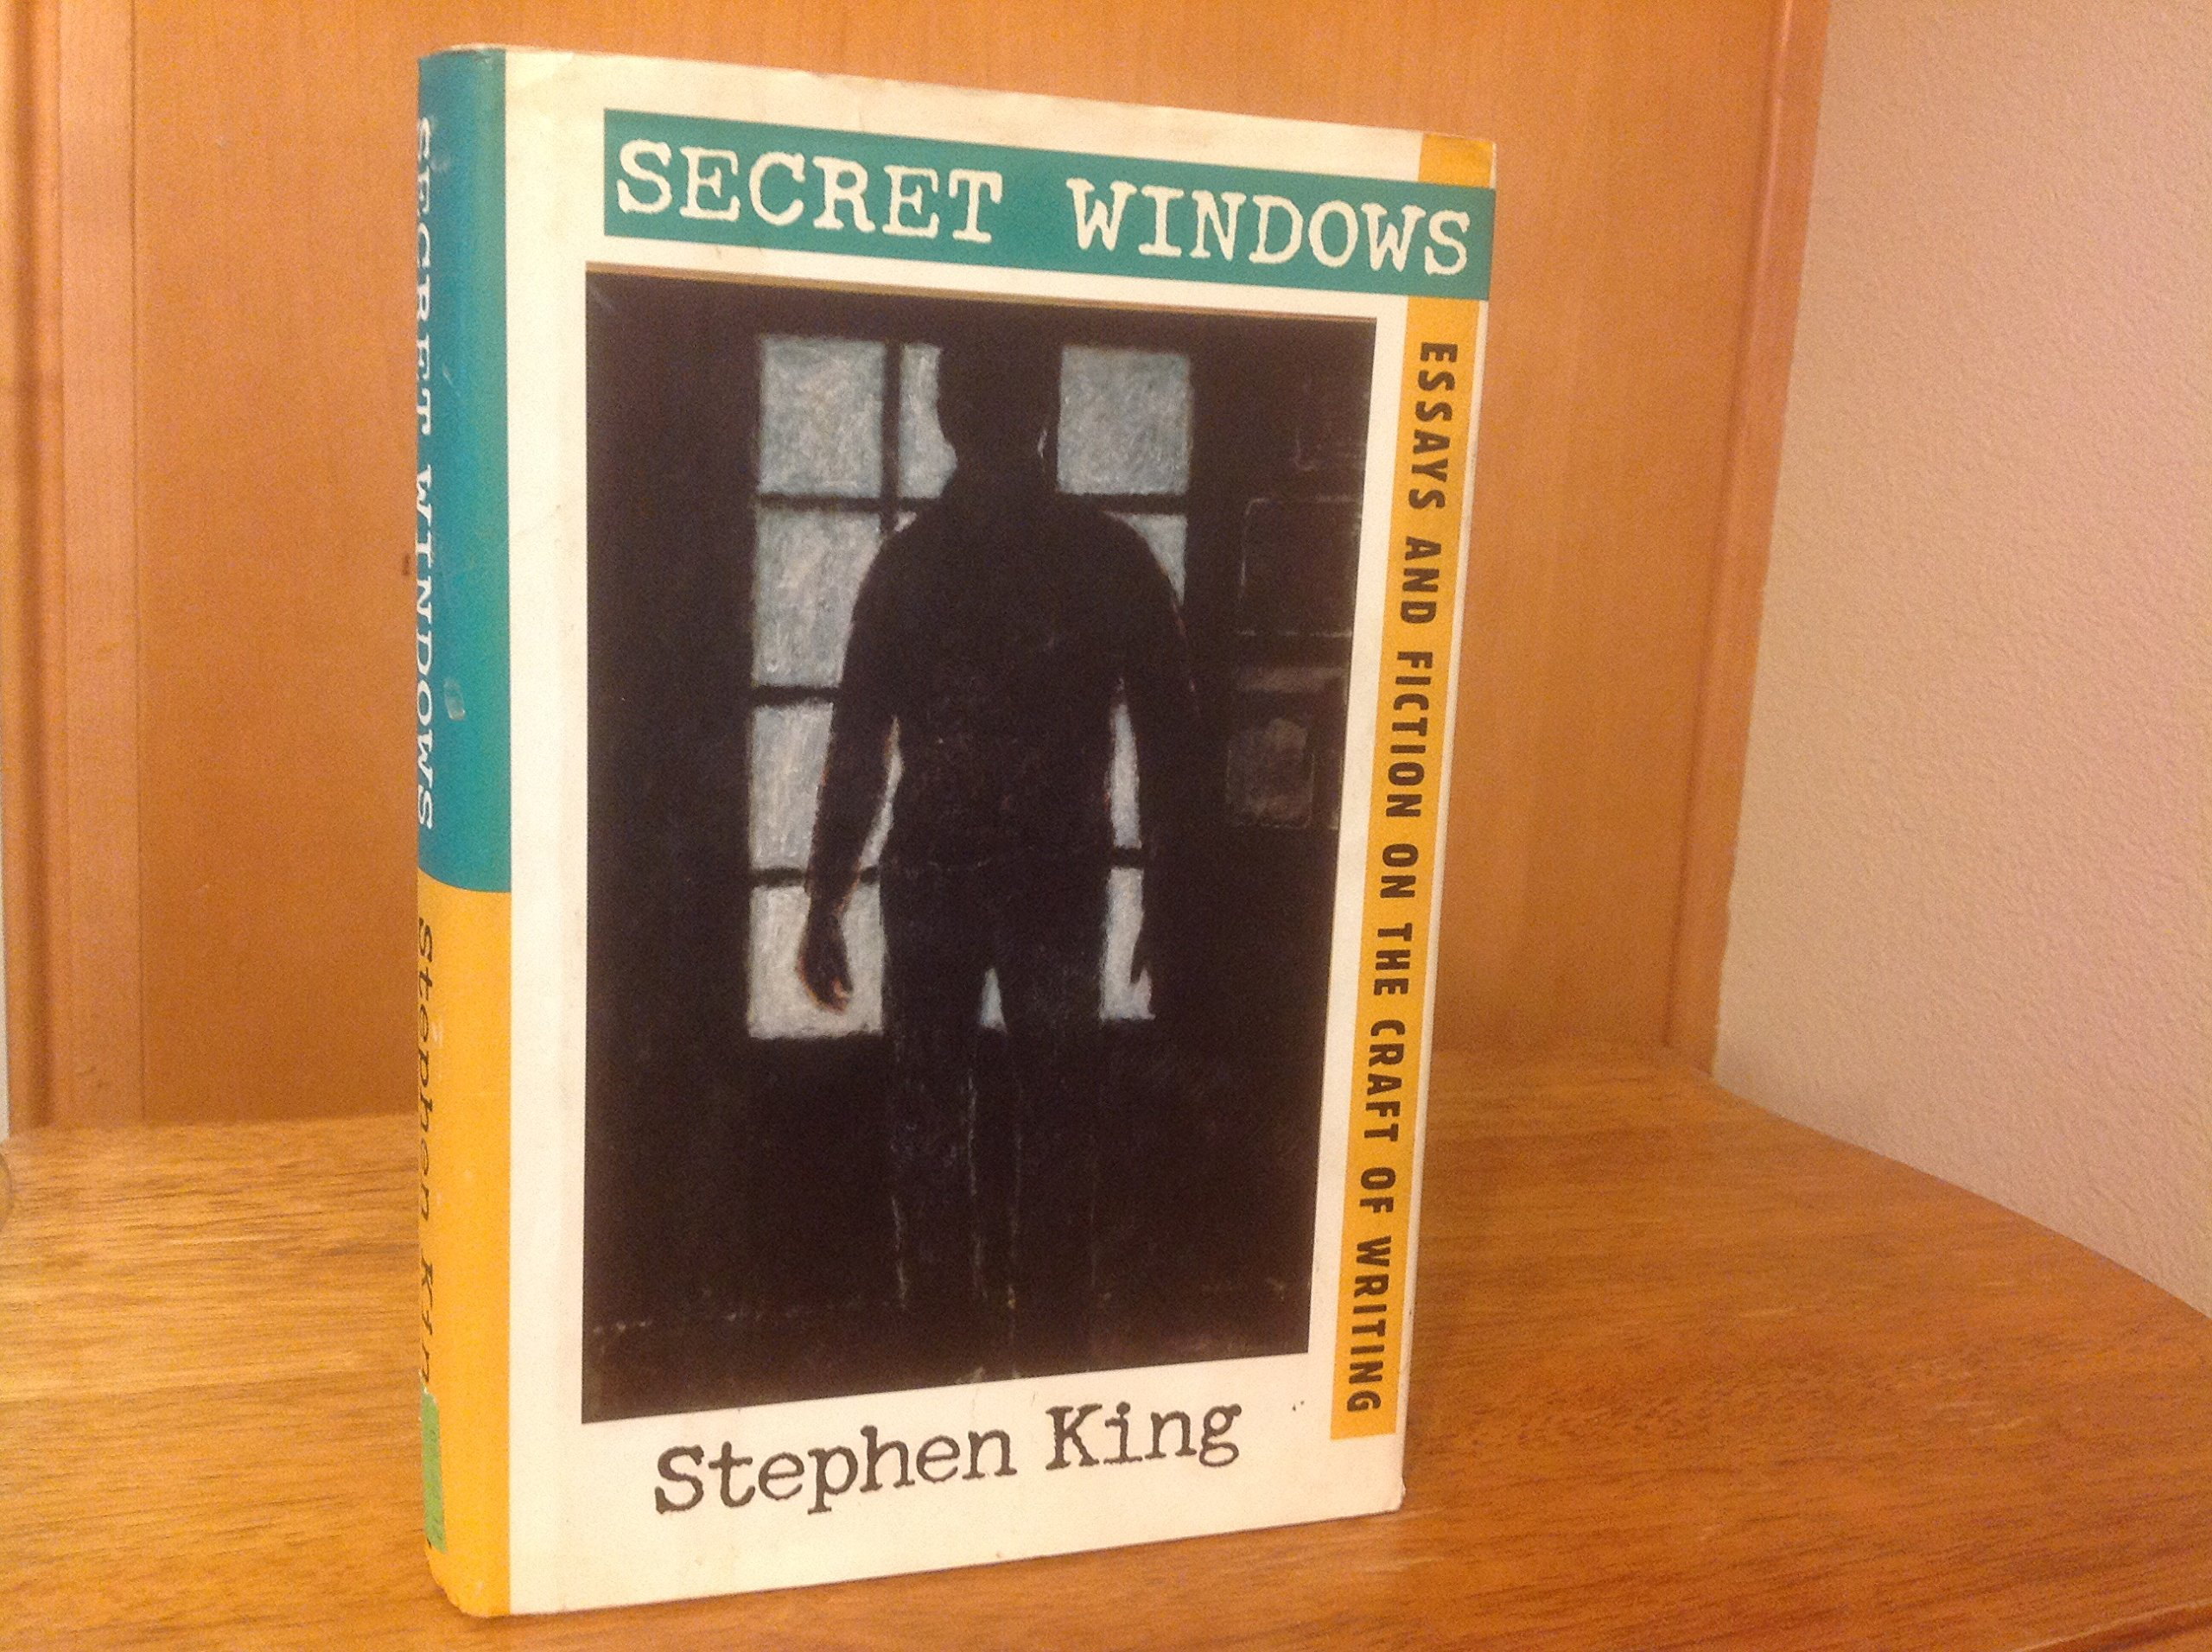 stephen king essays stephen king essays chad amp karina a secret windows essays and fiction on the craft of writing secret windows essays and fiction on